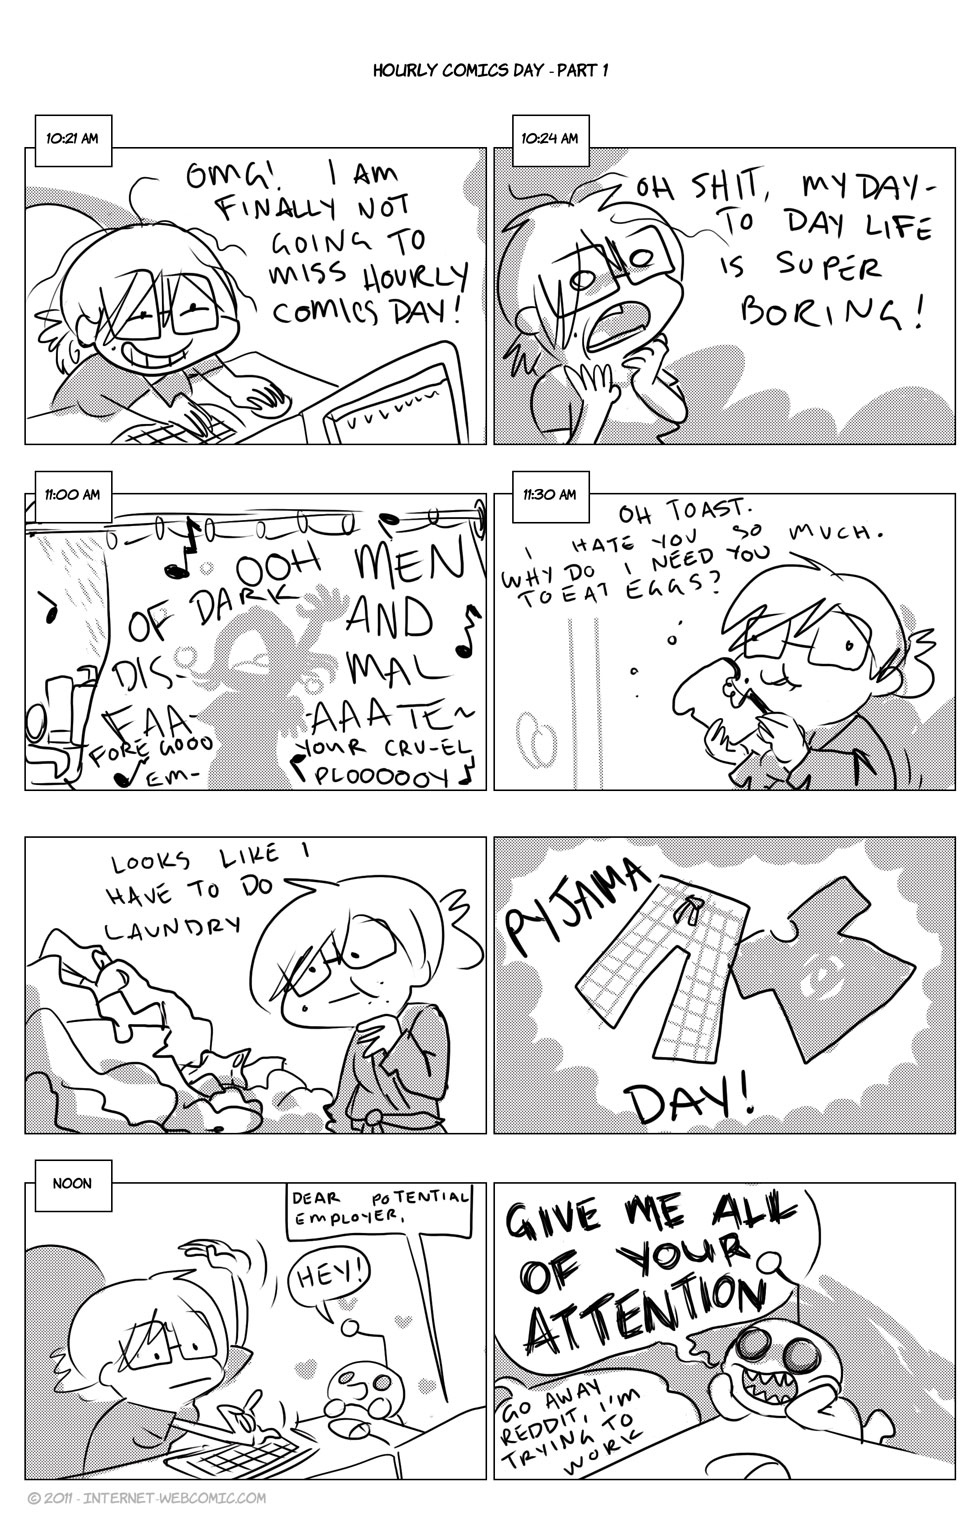 Hourly Comics – Part 1